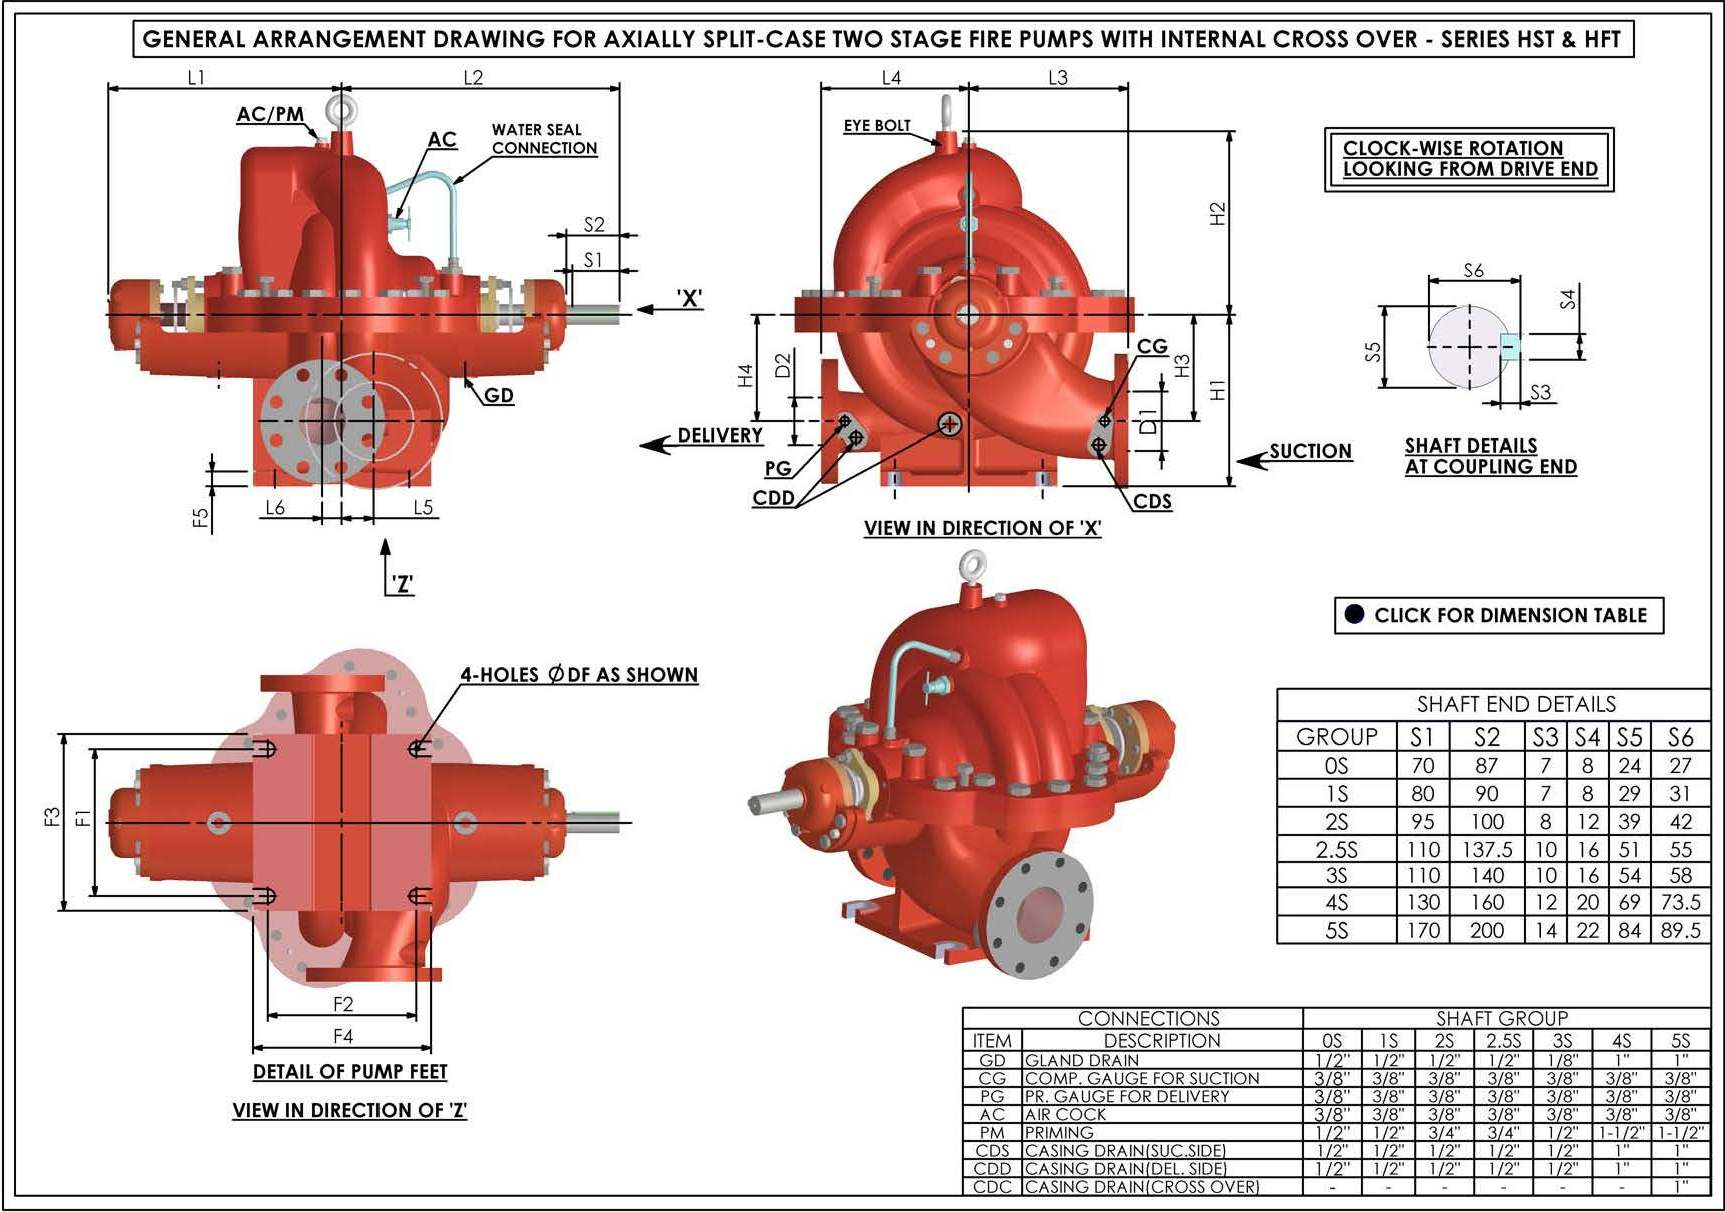 NFPA 20 Fire Pumps - Series HF & EF